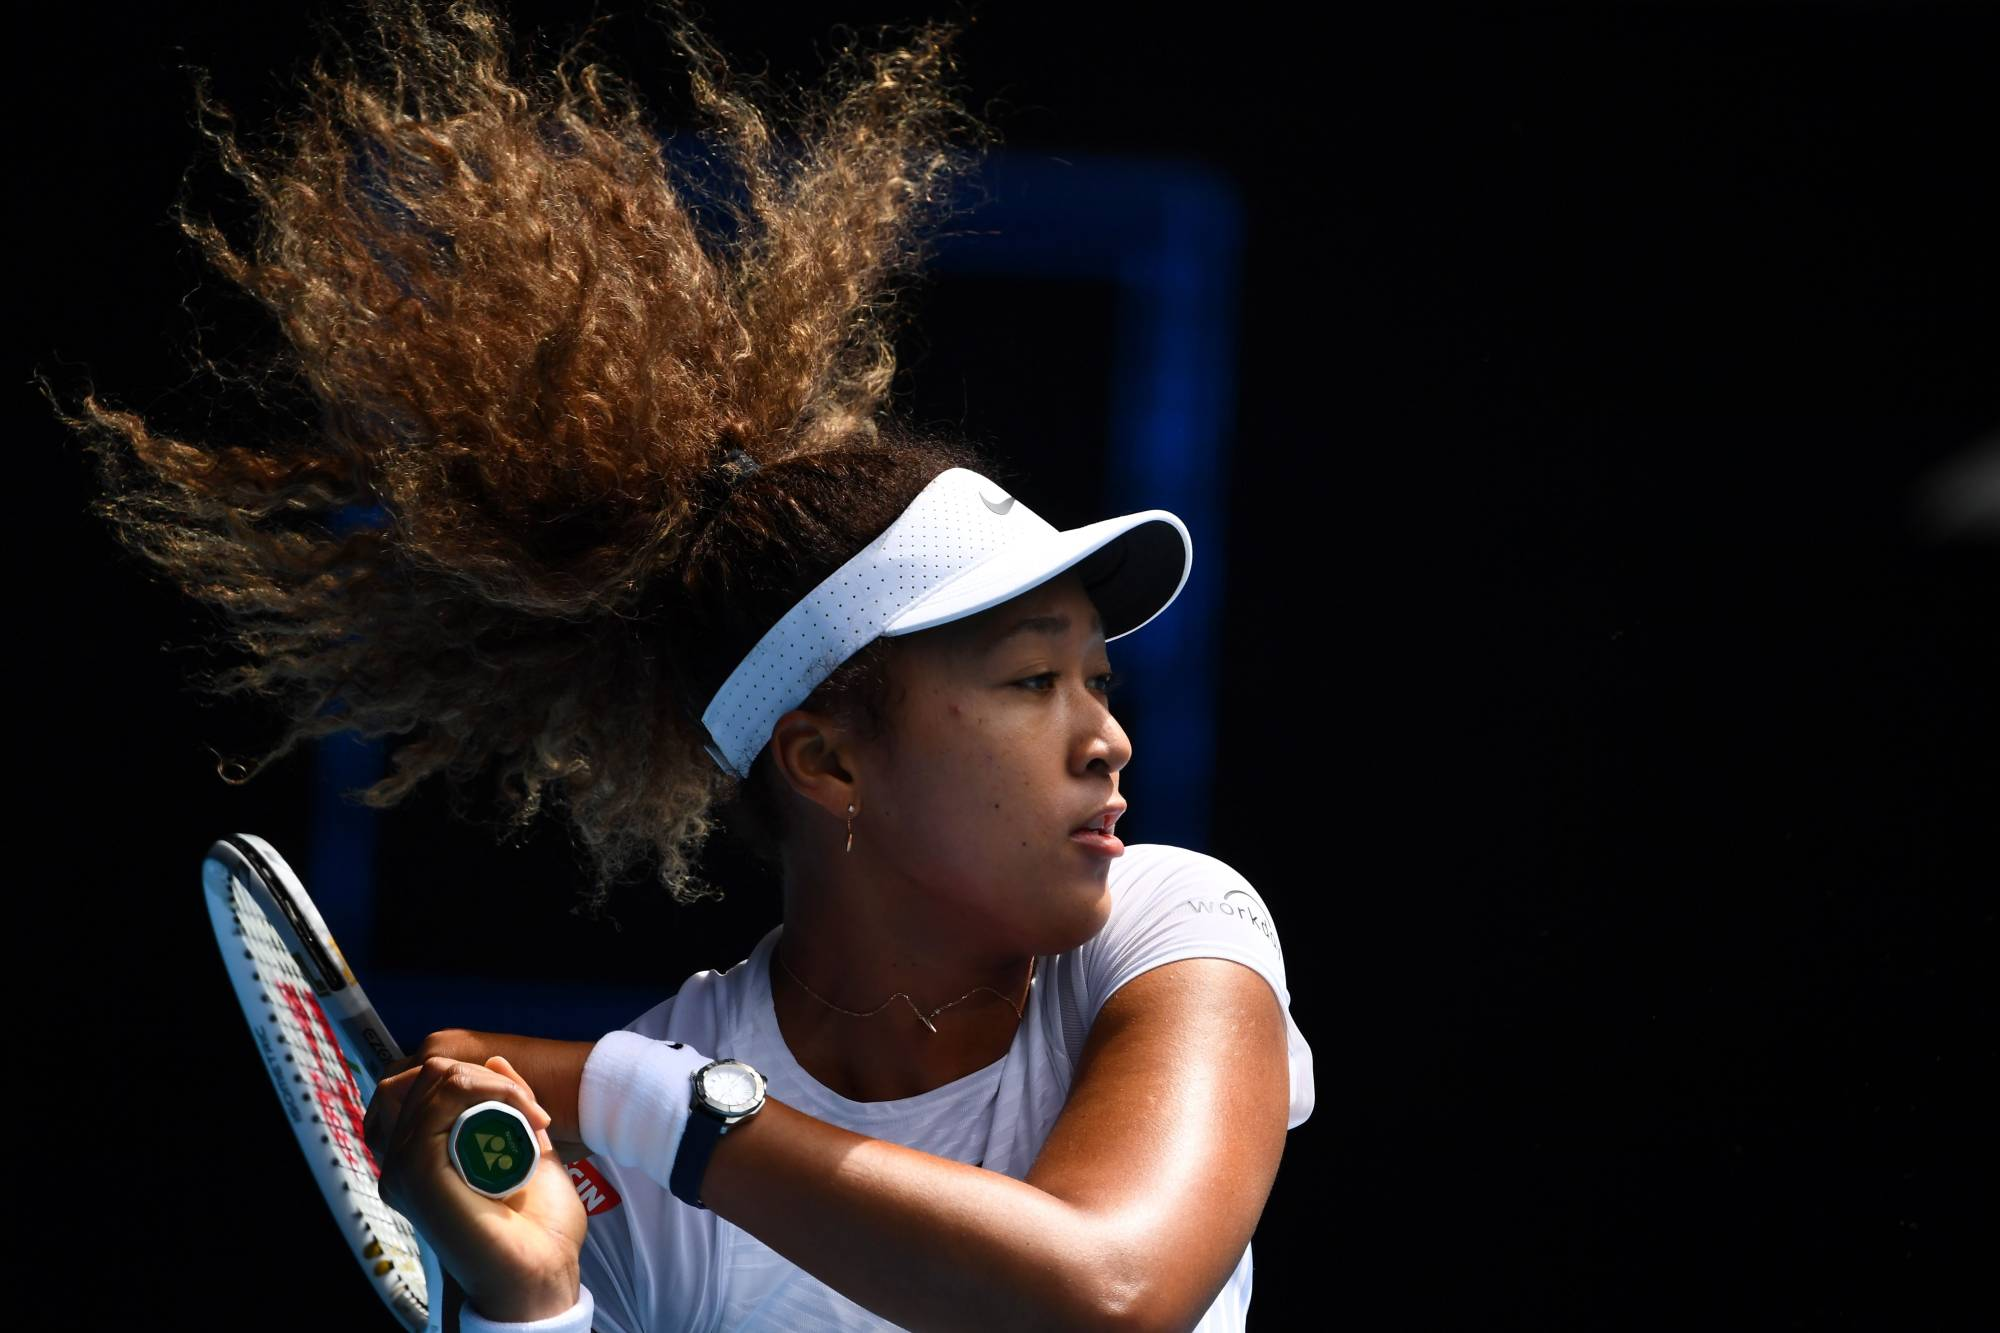 Naomi Osaka hits a return against France's Alize Cornet during their Gippsland Trophy women's singles tennis match in Melbourne on Tuesday.  | AFP-JIJI